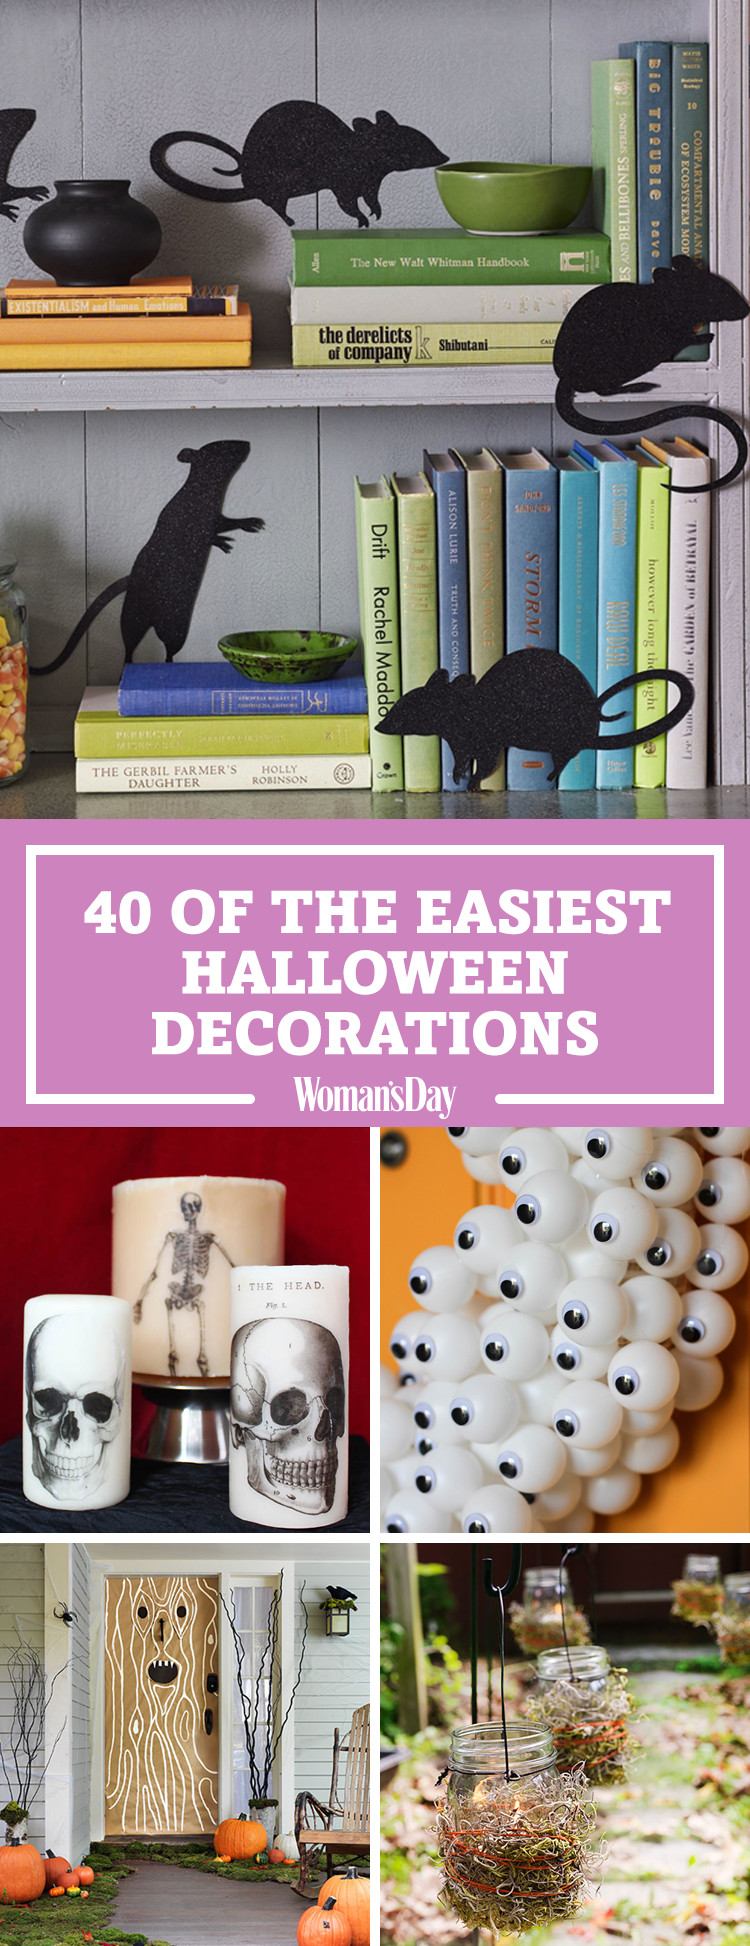 50 easy halloween decorations spooky home decor ideas for halloween - At Home Halloween Decorations